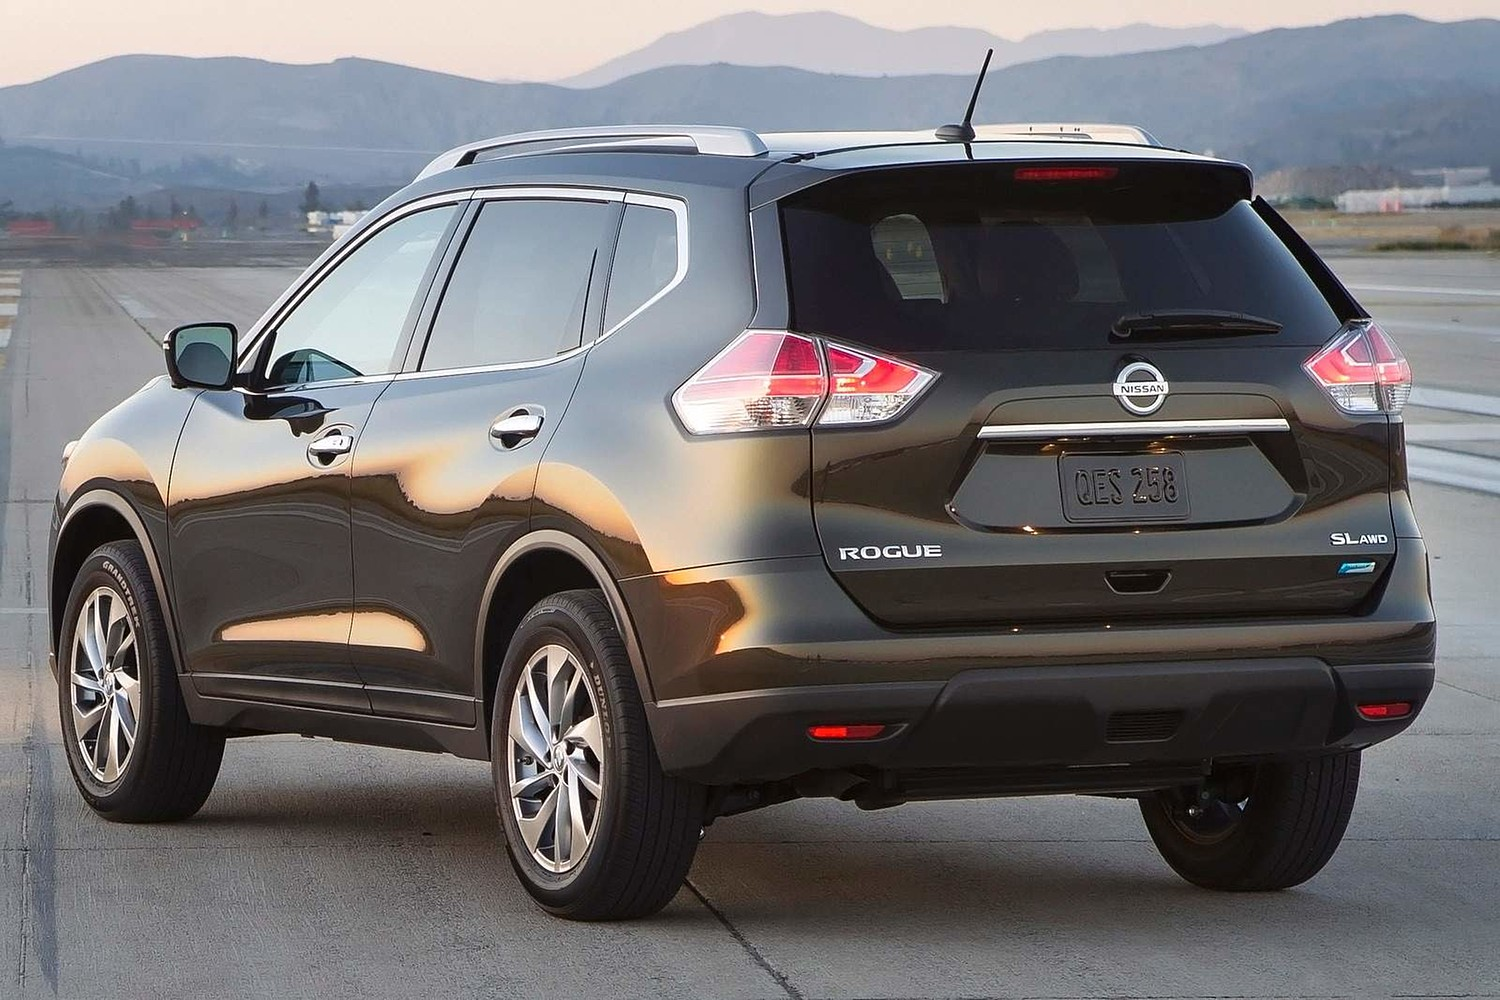 Nissan Rogue SL 4dr SUV Exterior (2014 model year shown)